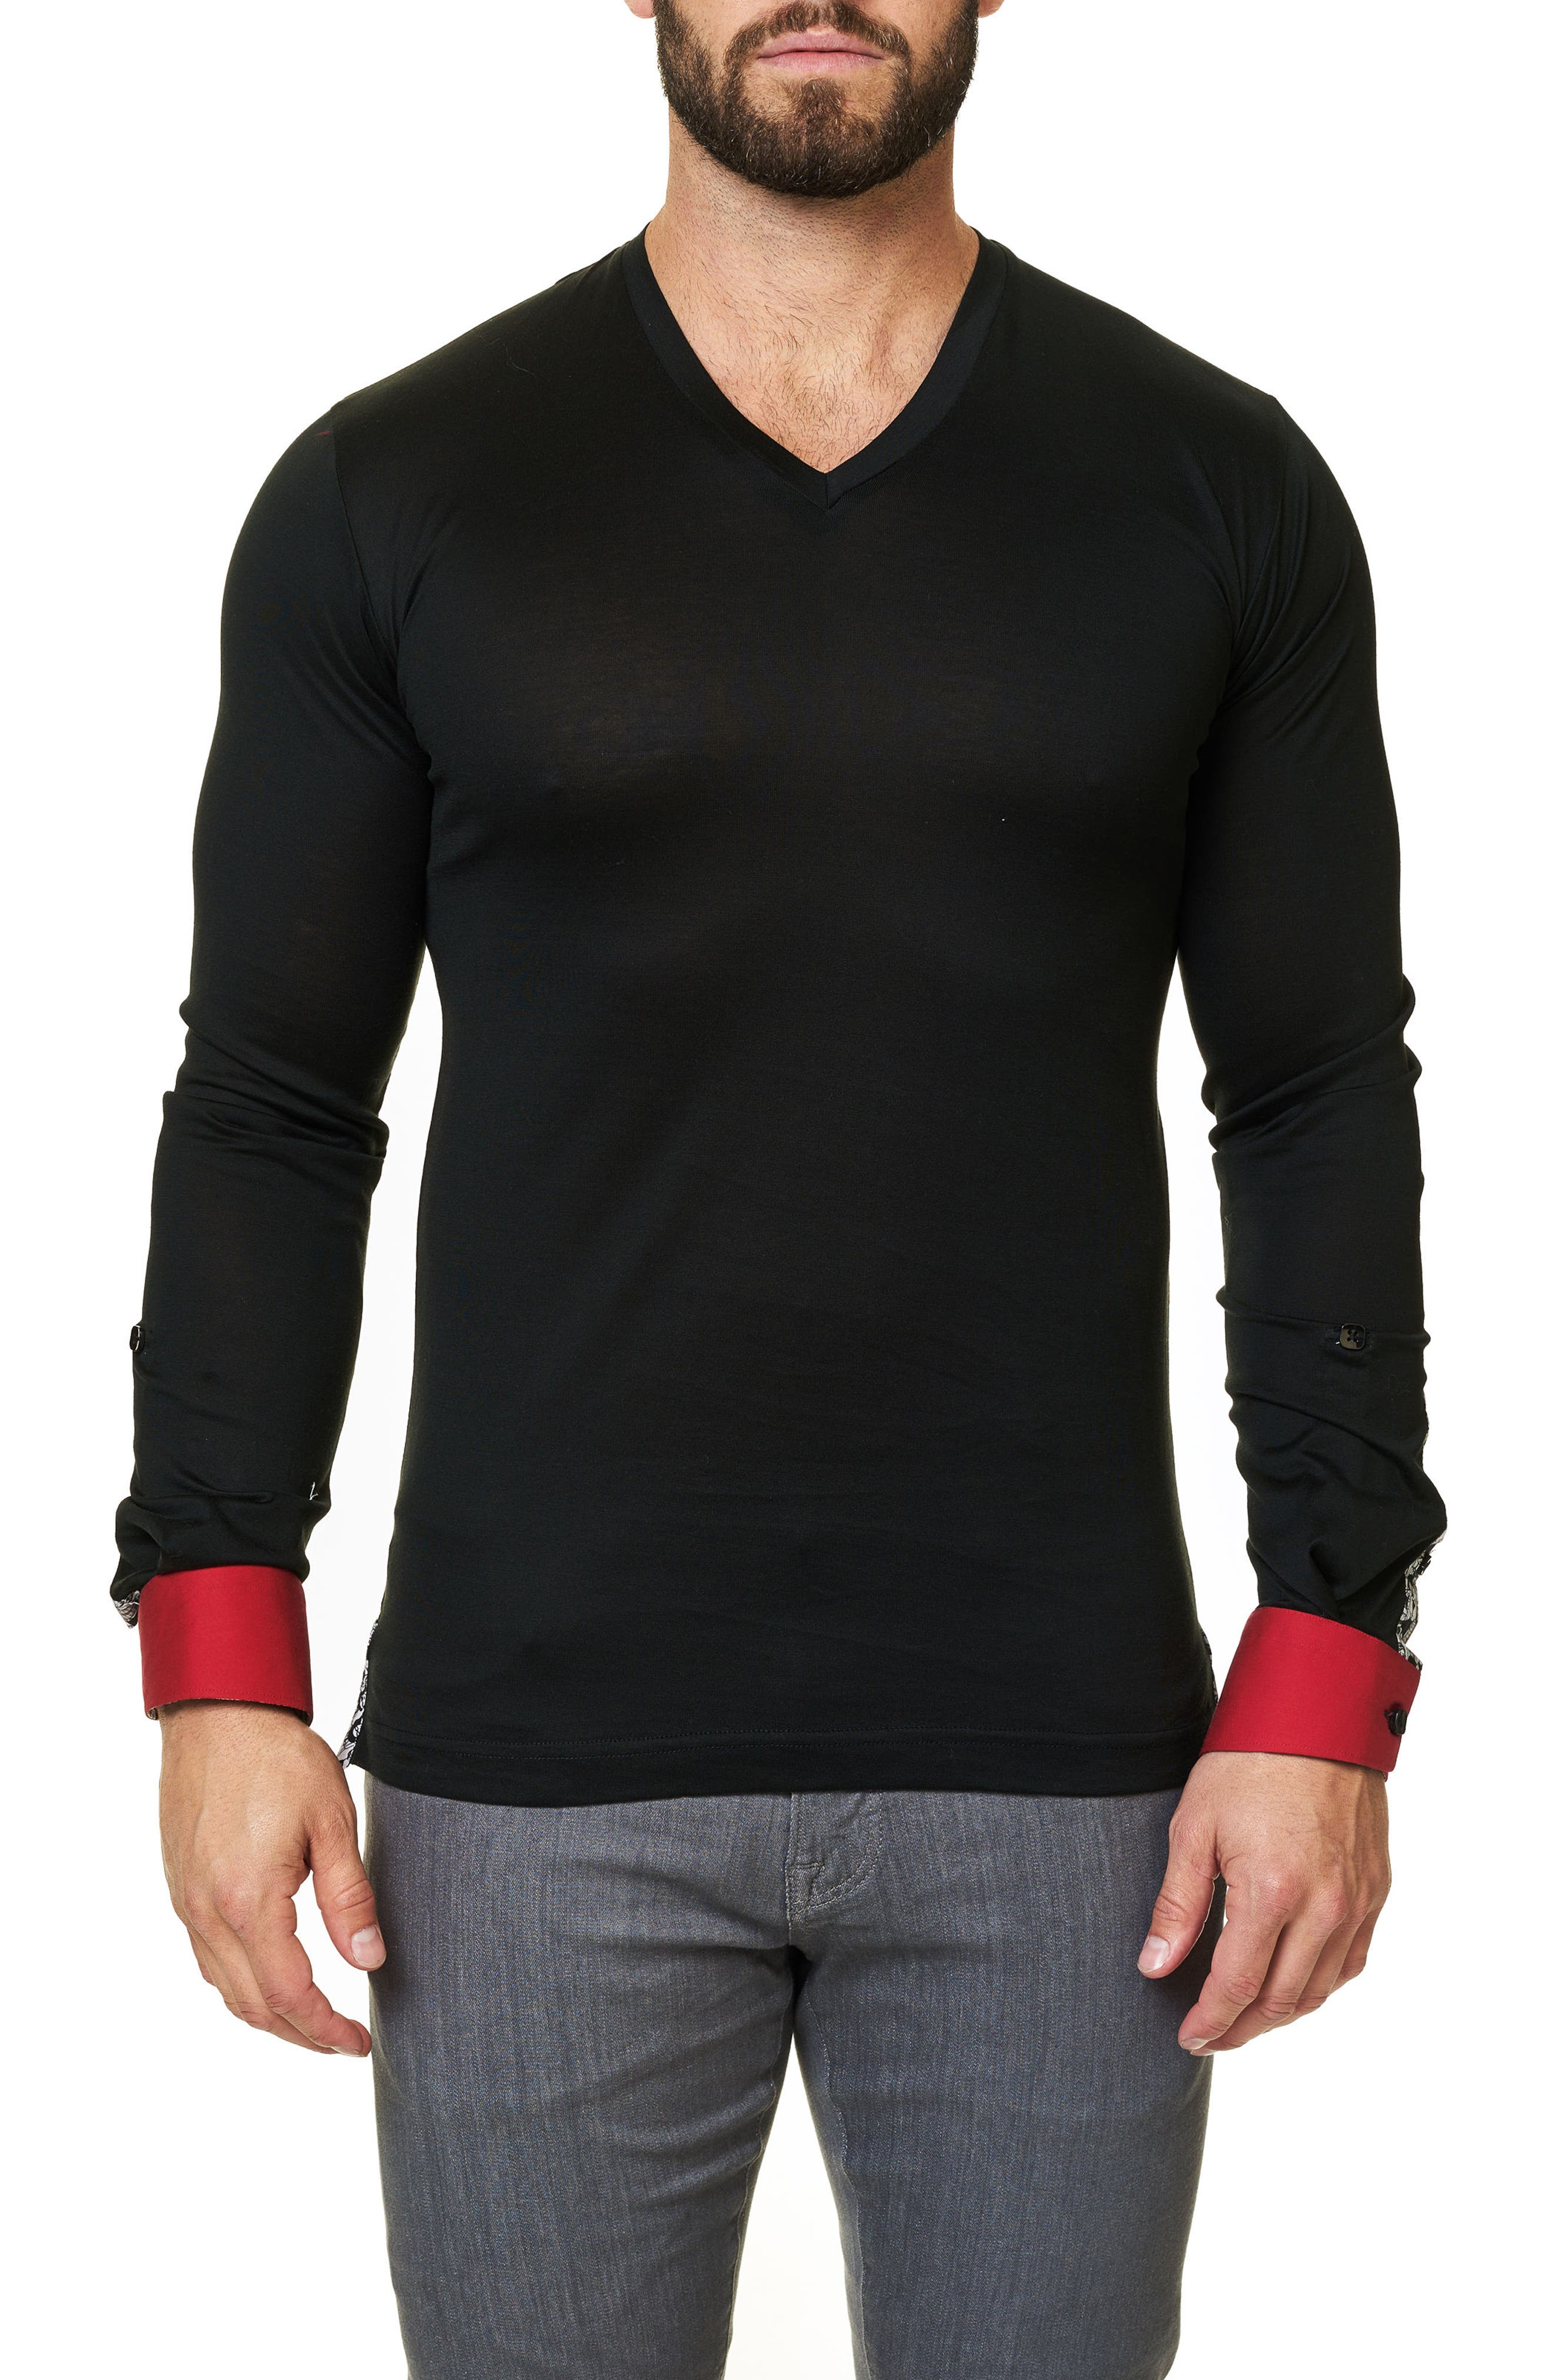 Main Image - Maceoo Long Sleeve V-Neck